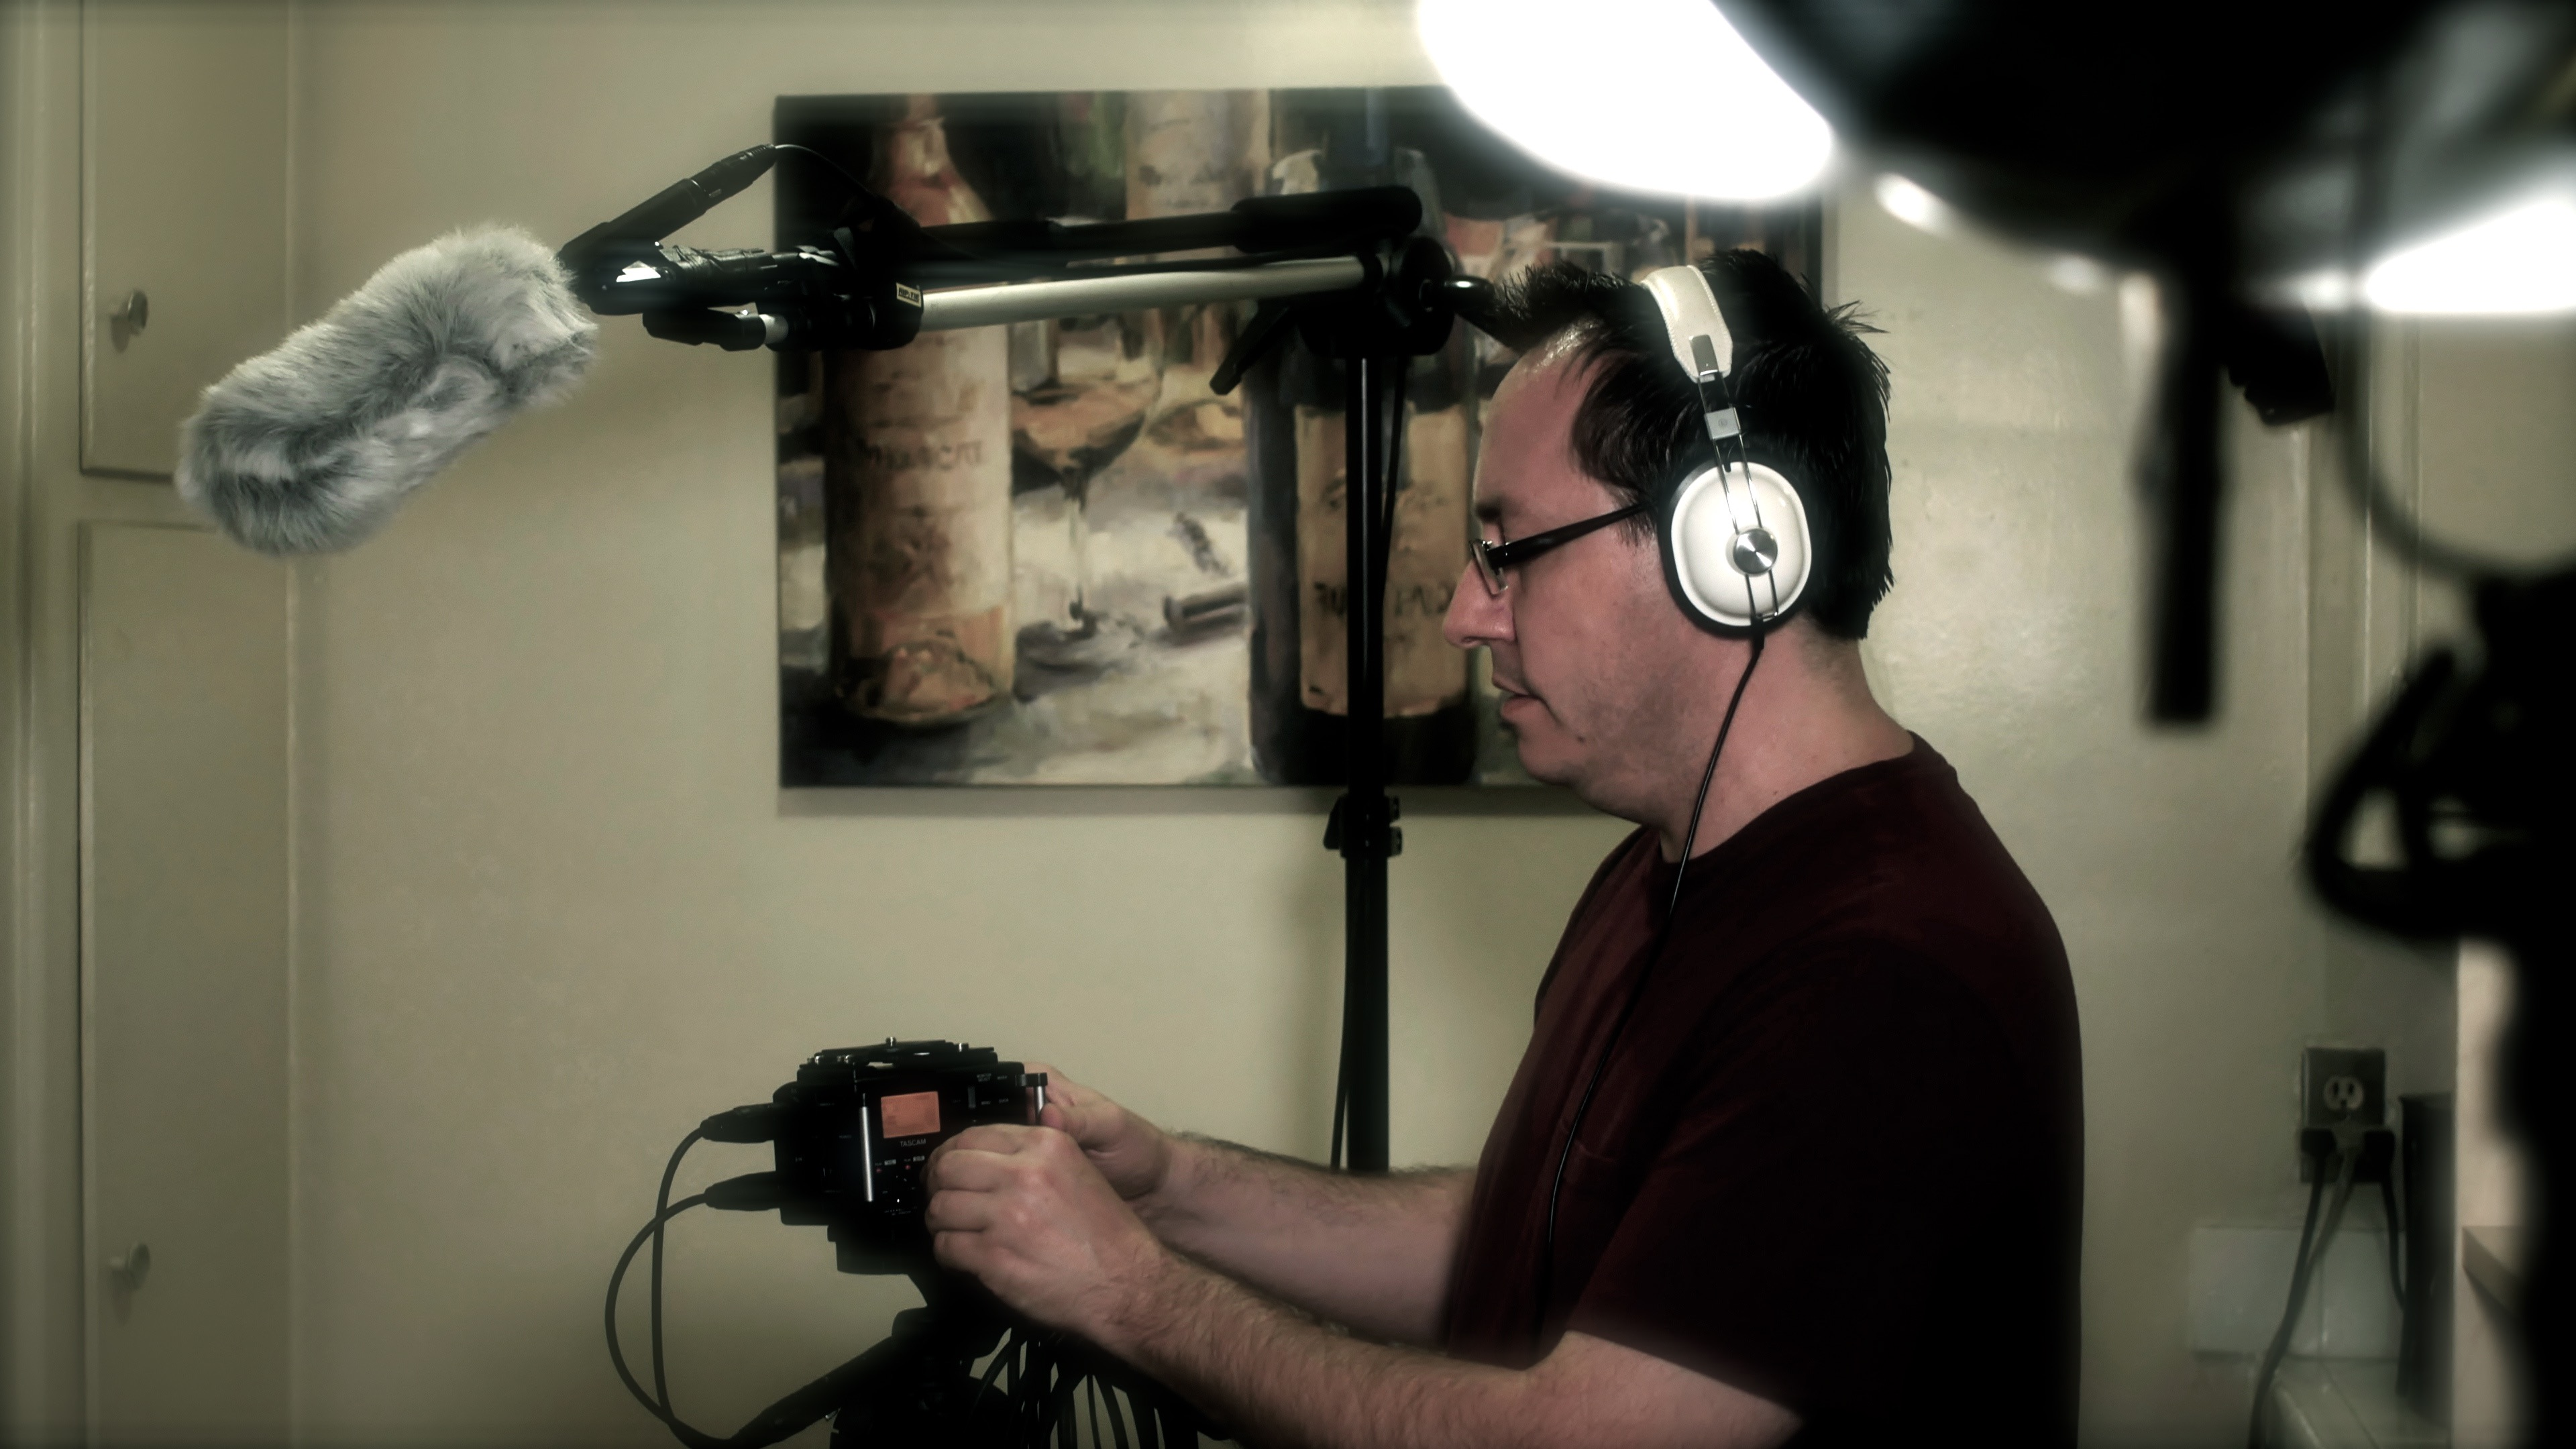 Director Shane Cole Behind The Scene